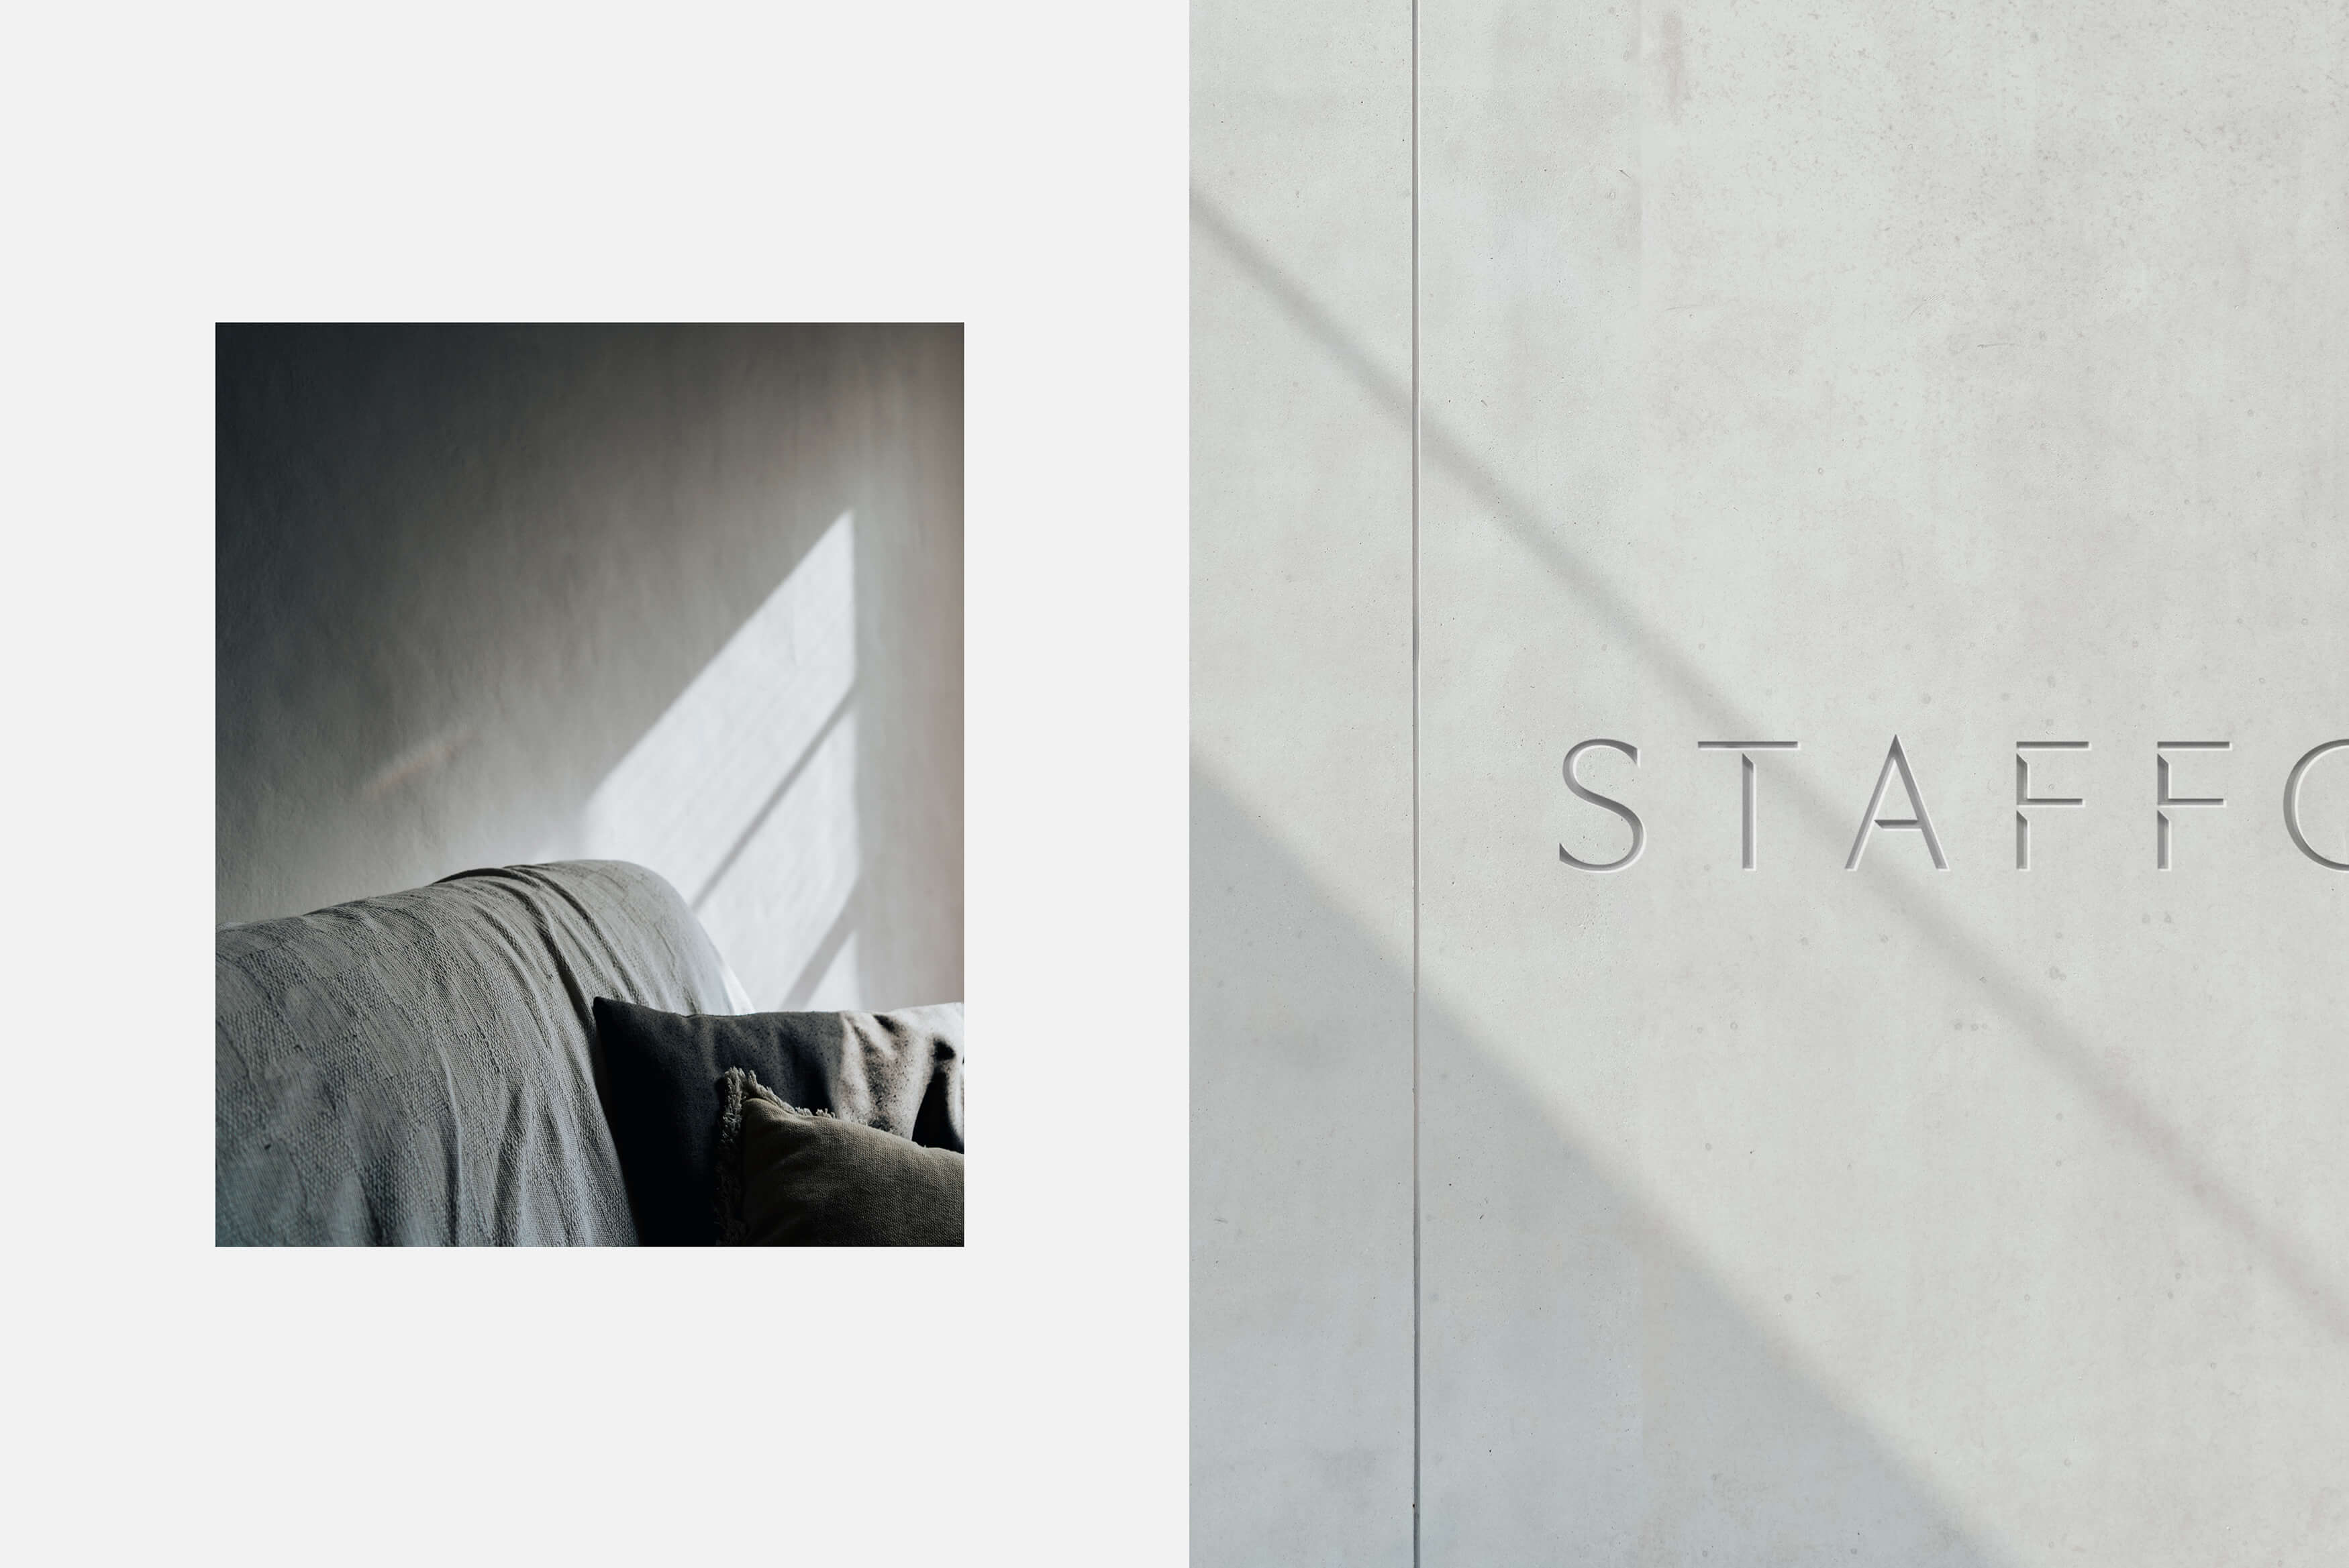 Stafford Architecture - Interior photograph and concrete etched logotype